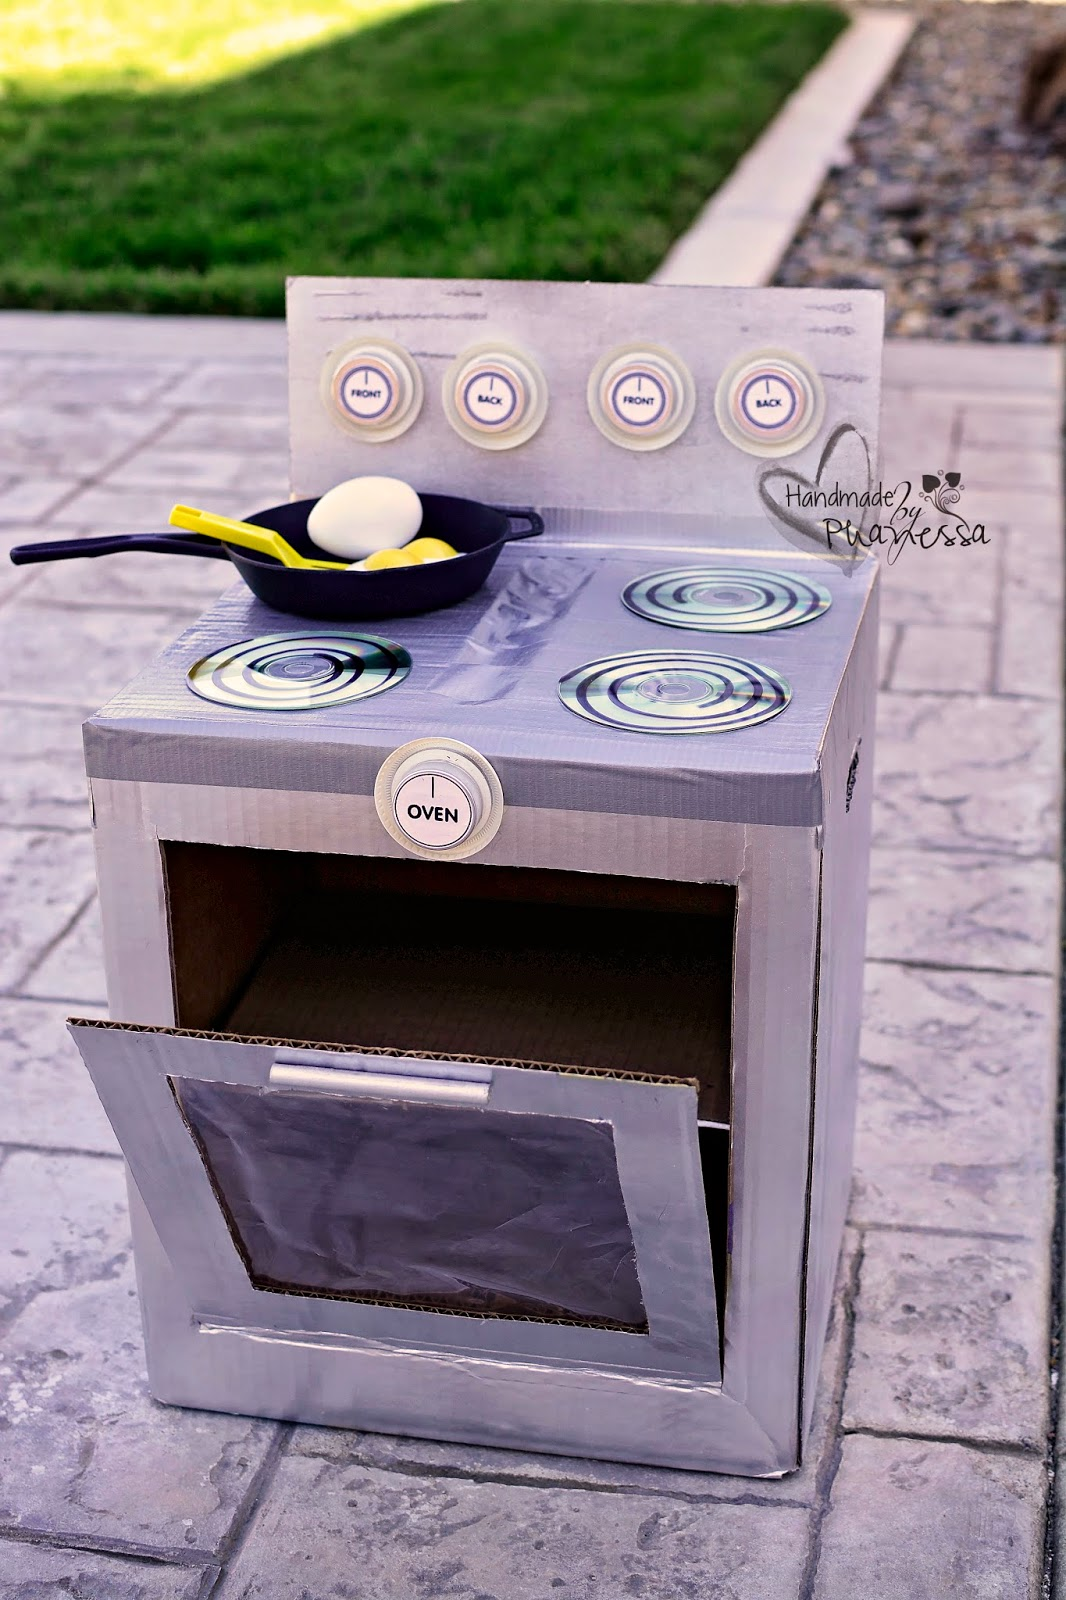 Phanessa 39 s crafts diy cardboard stove oven for How to make a stove